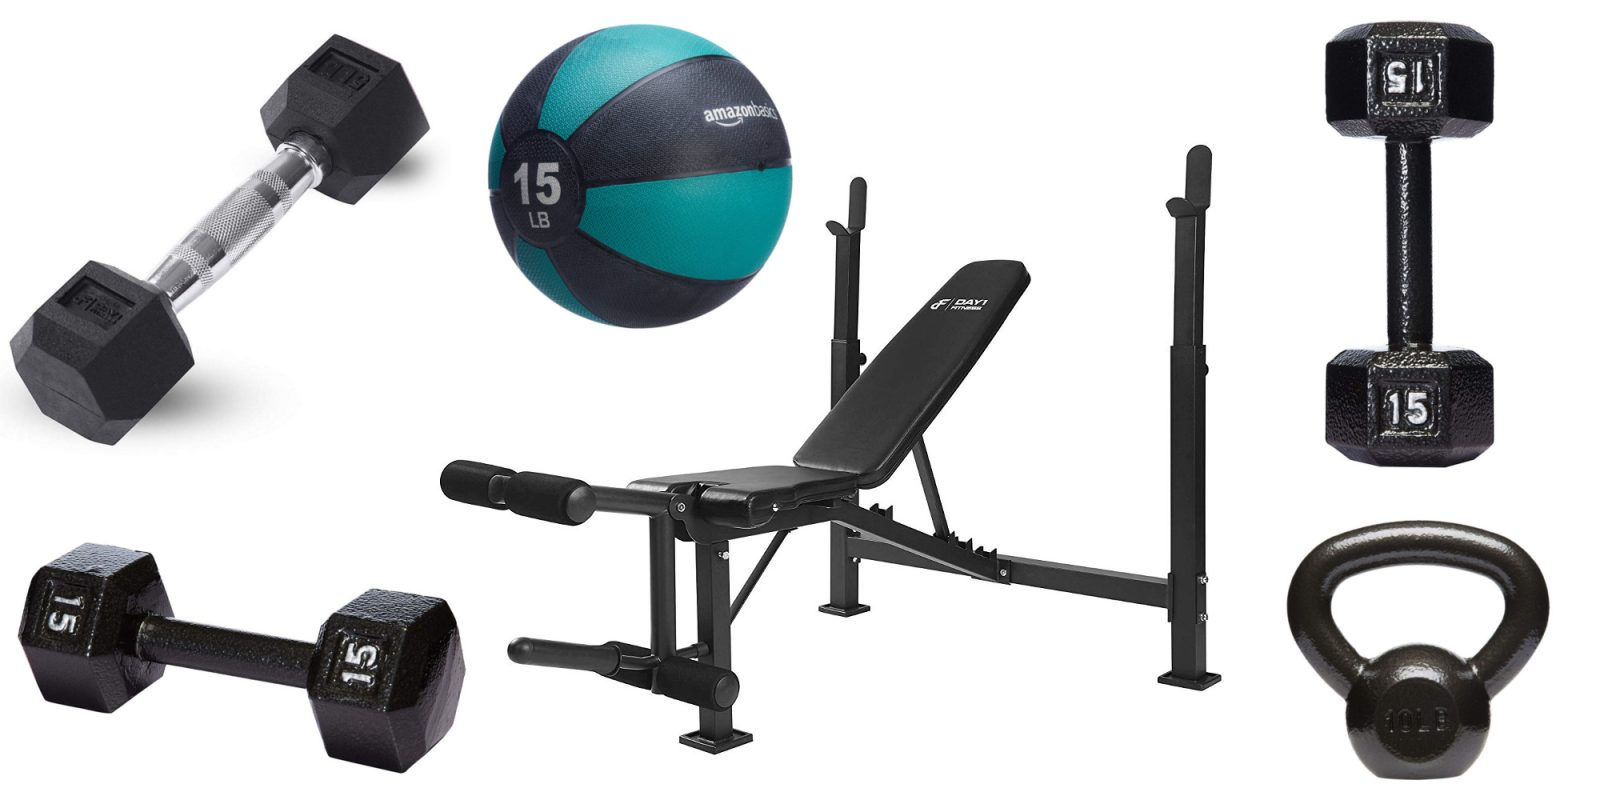 Prime Day fitness deals up to 30% off: dumbbells, benches, more from $12